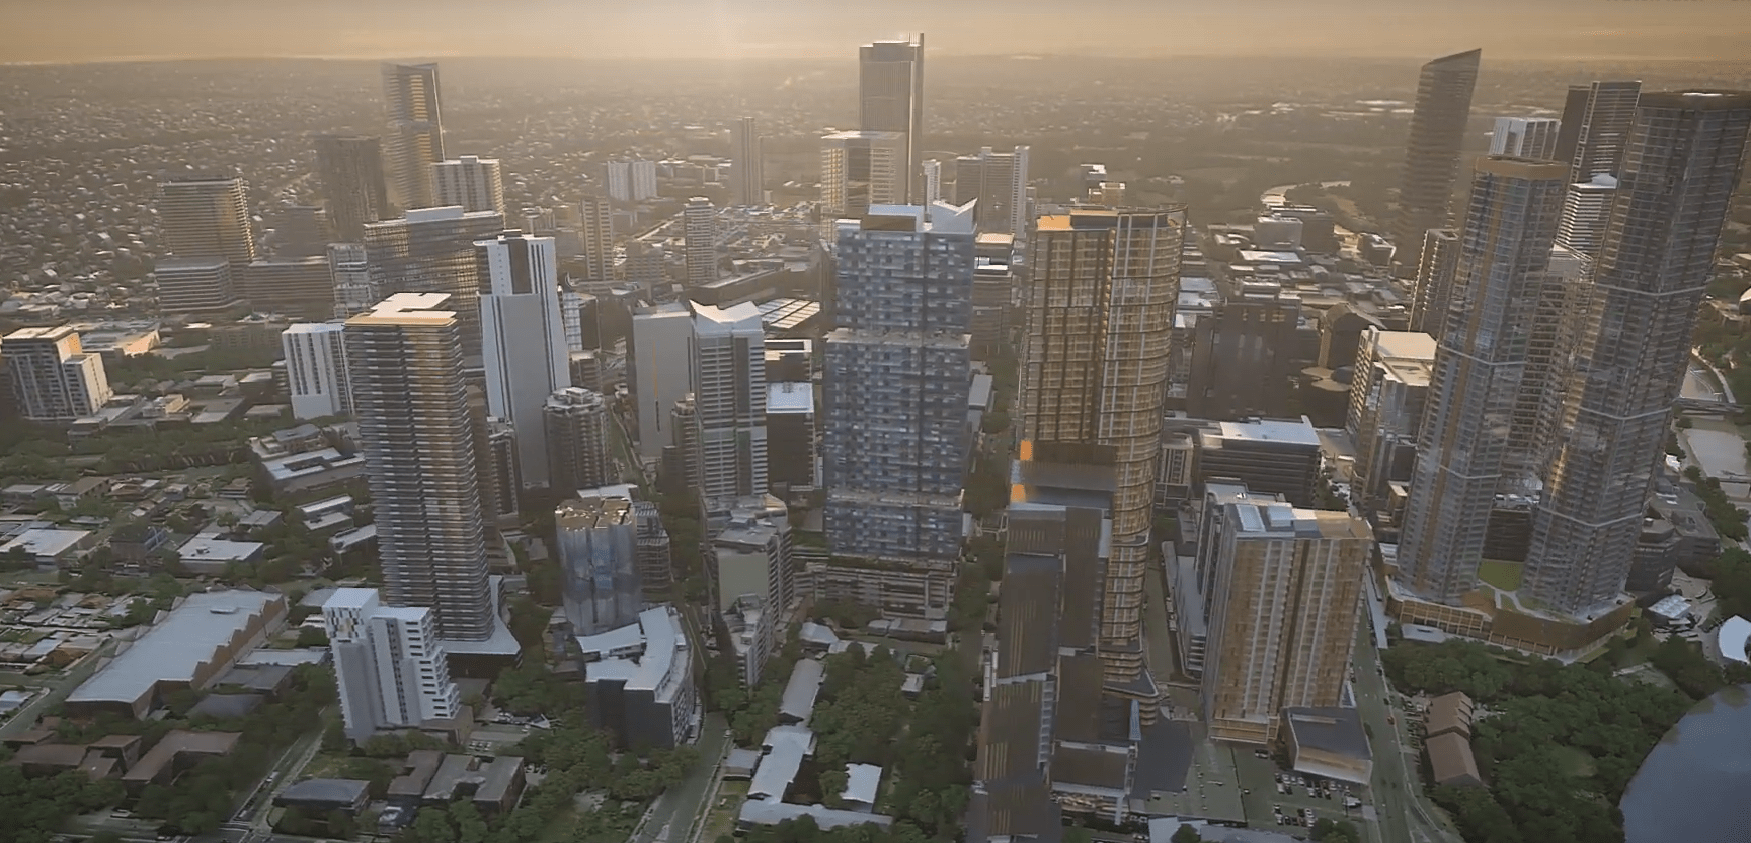 Council offers a glimpse of what Parramatta will look like in the near future